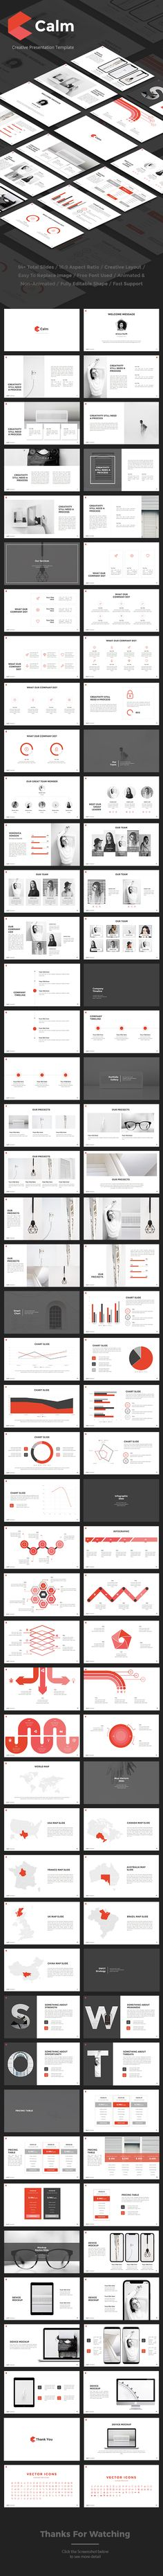 Creative multipurpose powerpoint template business powerpoint calm keynote ccuart Image collections